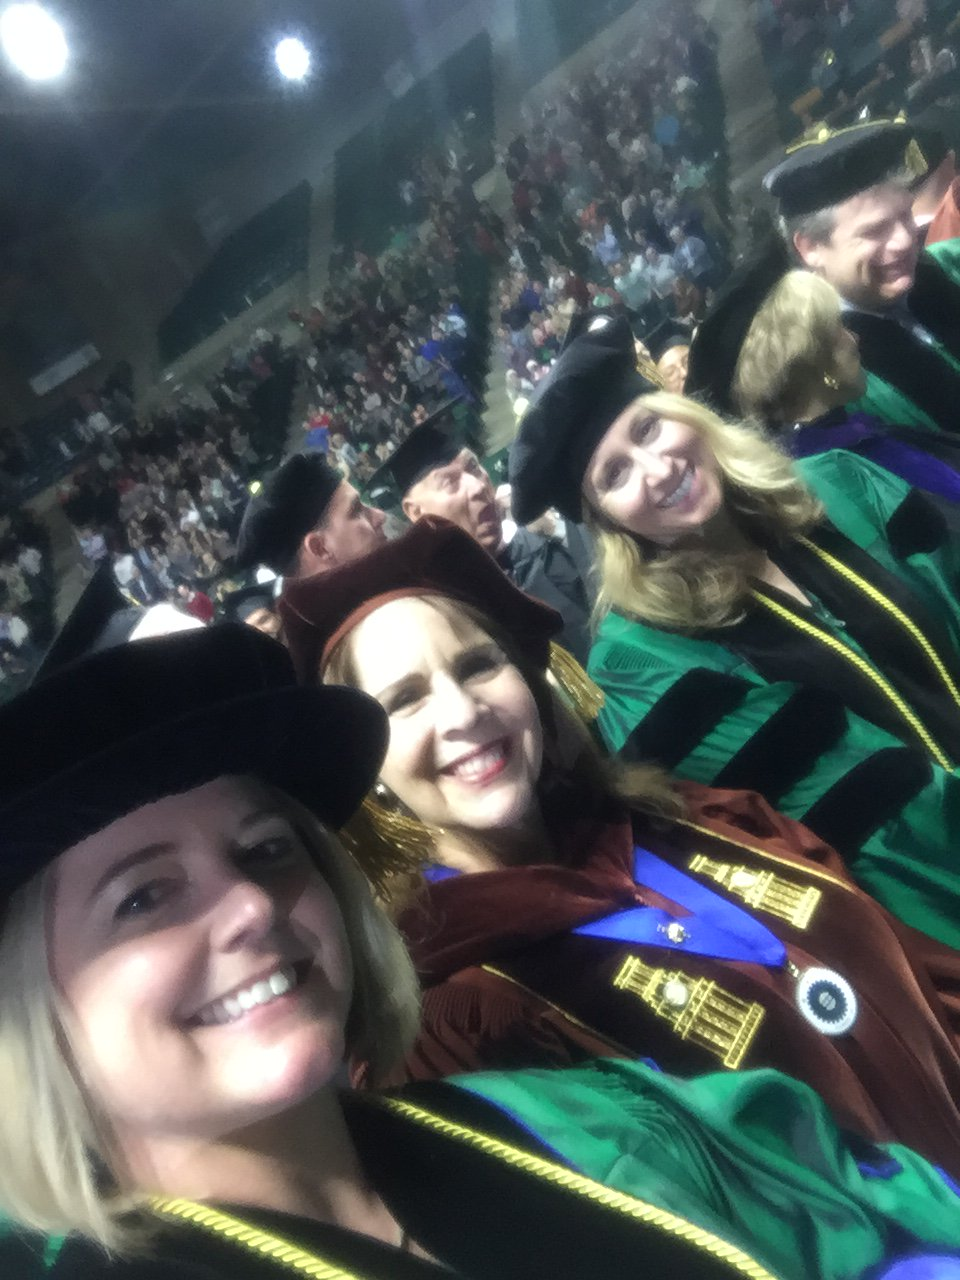 Greetings #txeduchat I'm Whitney from North Texas. I teach/consult in higher ed & took this pic in December from the floor of graduation! https://t.co/rITPIlfk2e